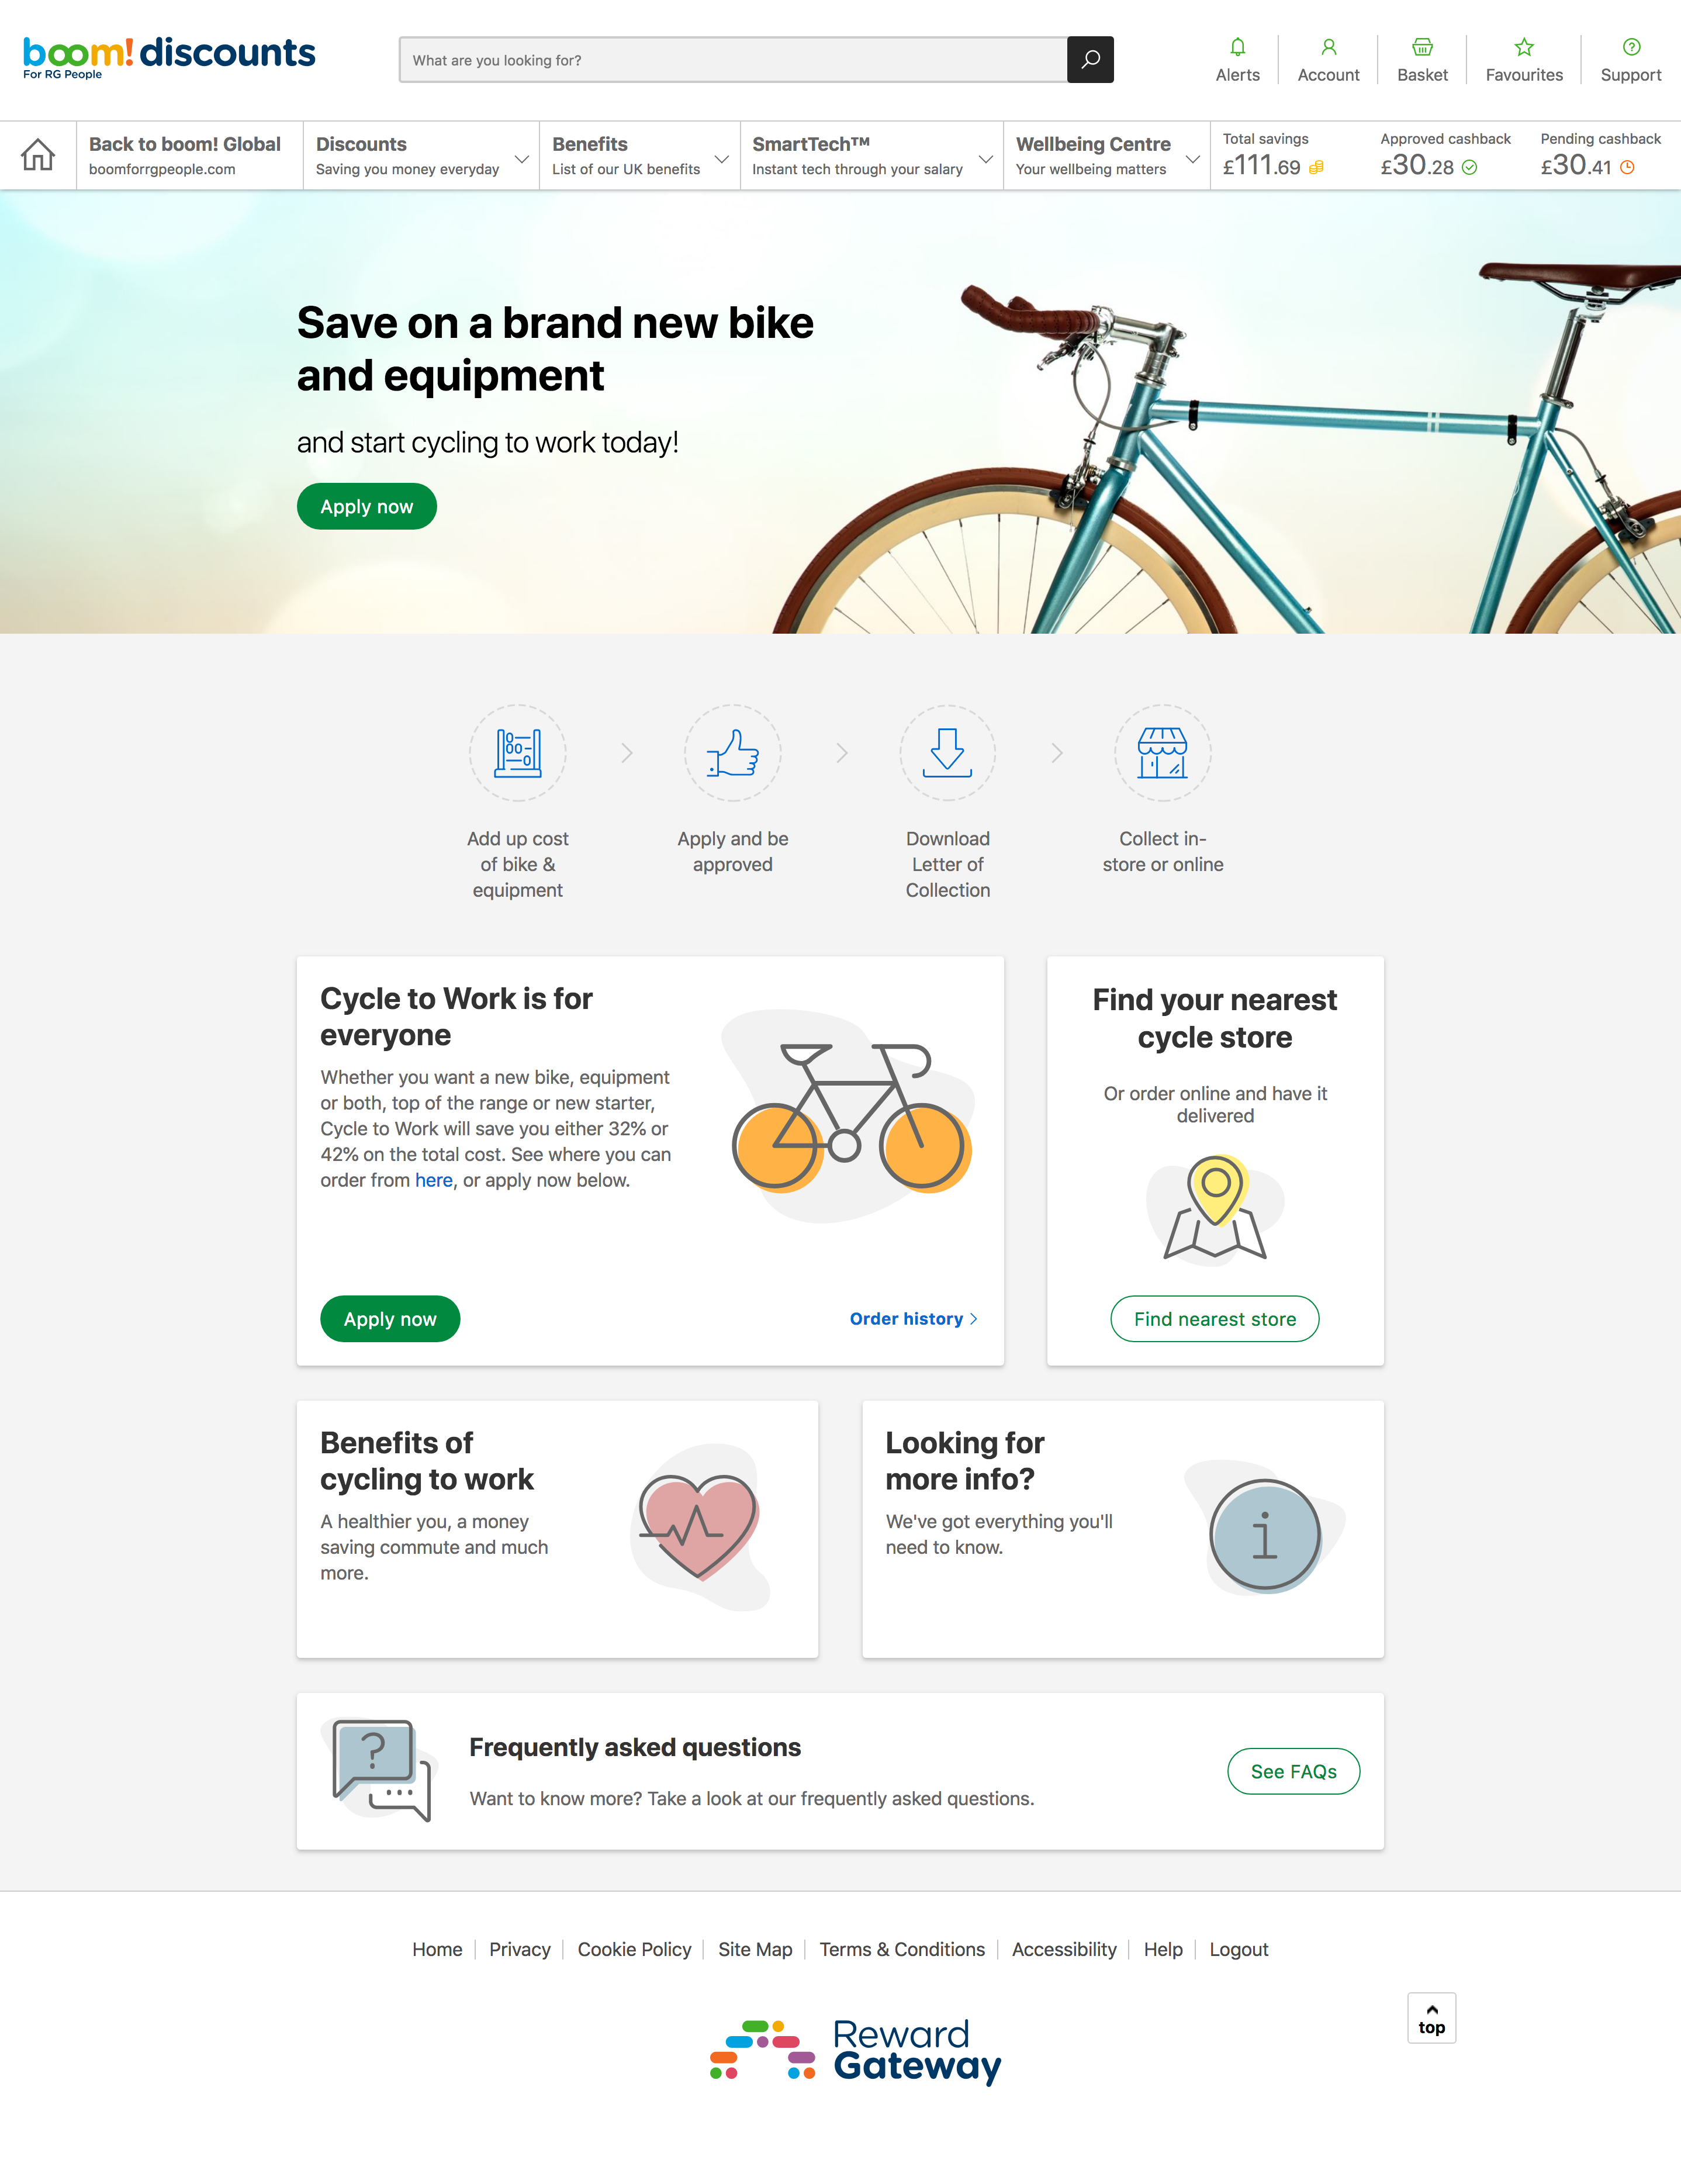 1543407332137-New_landing_page.png